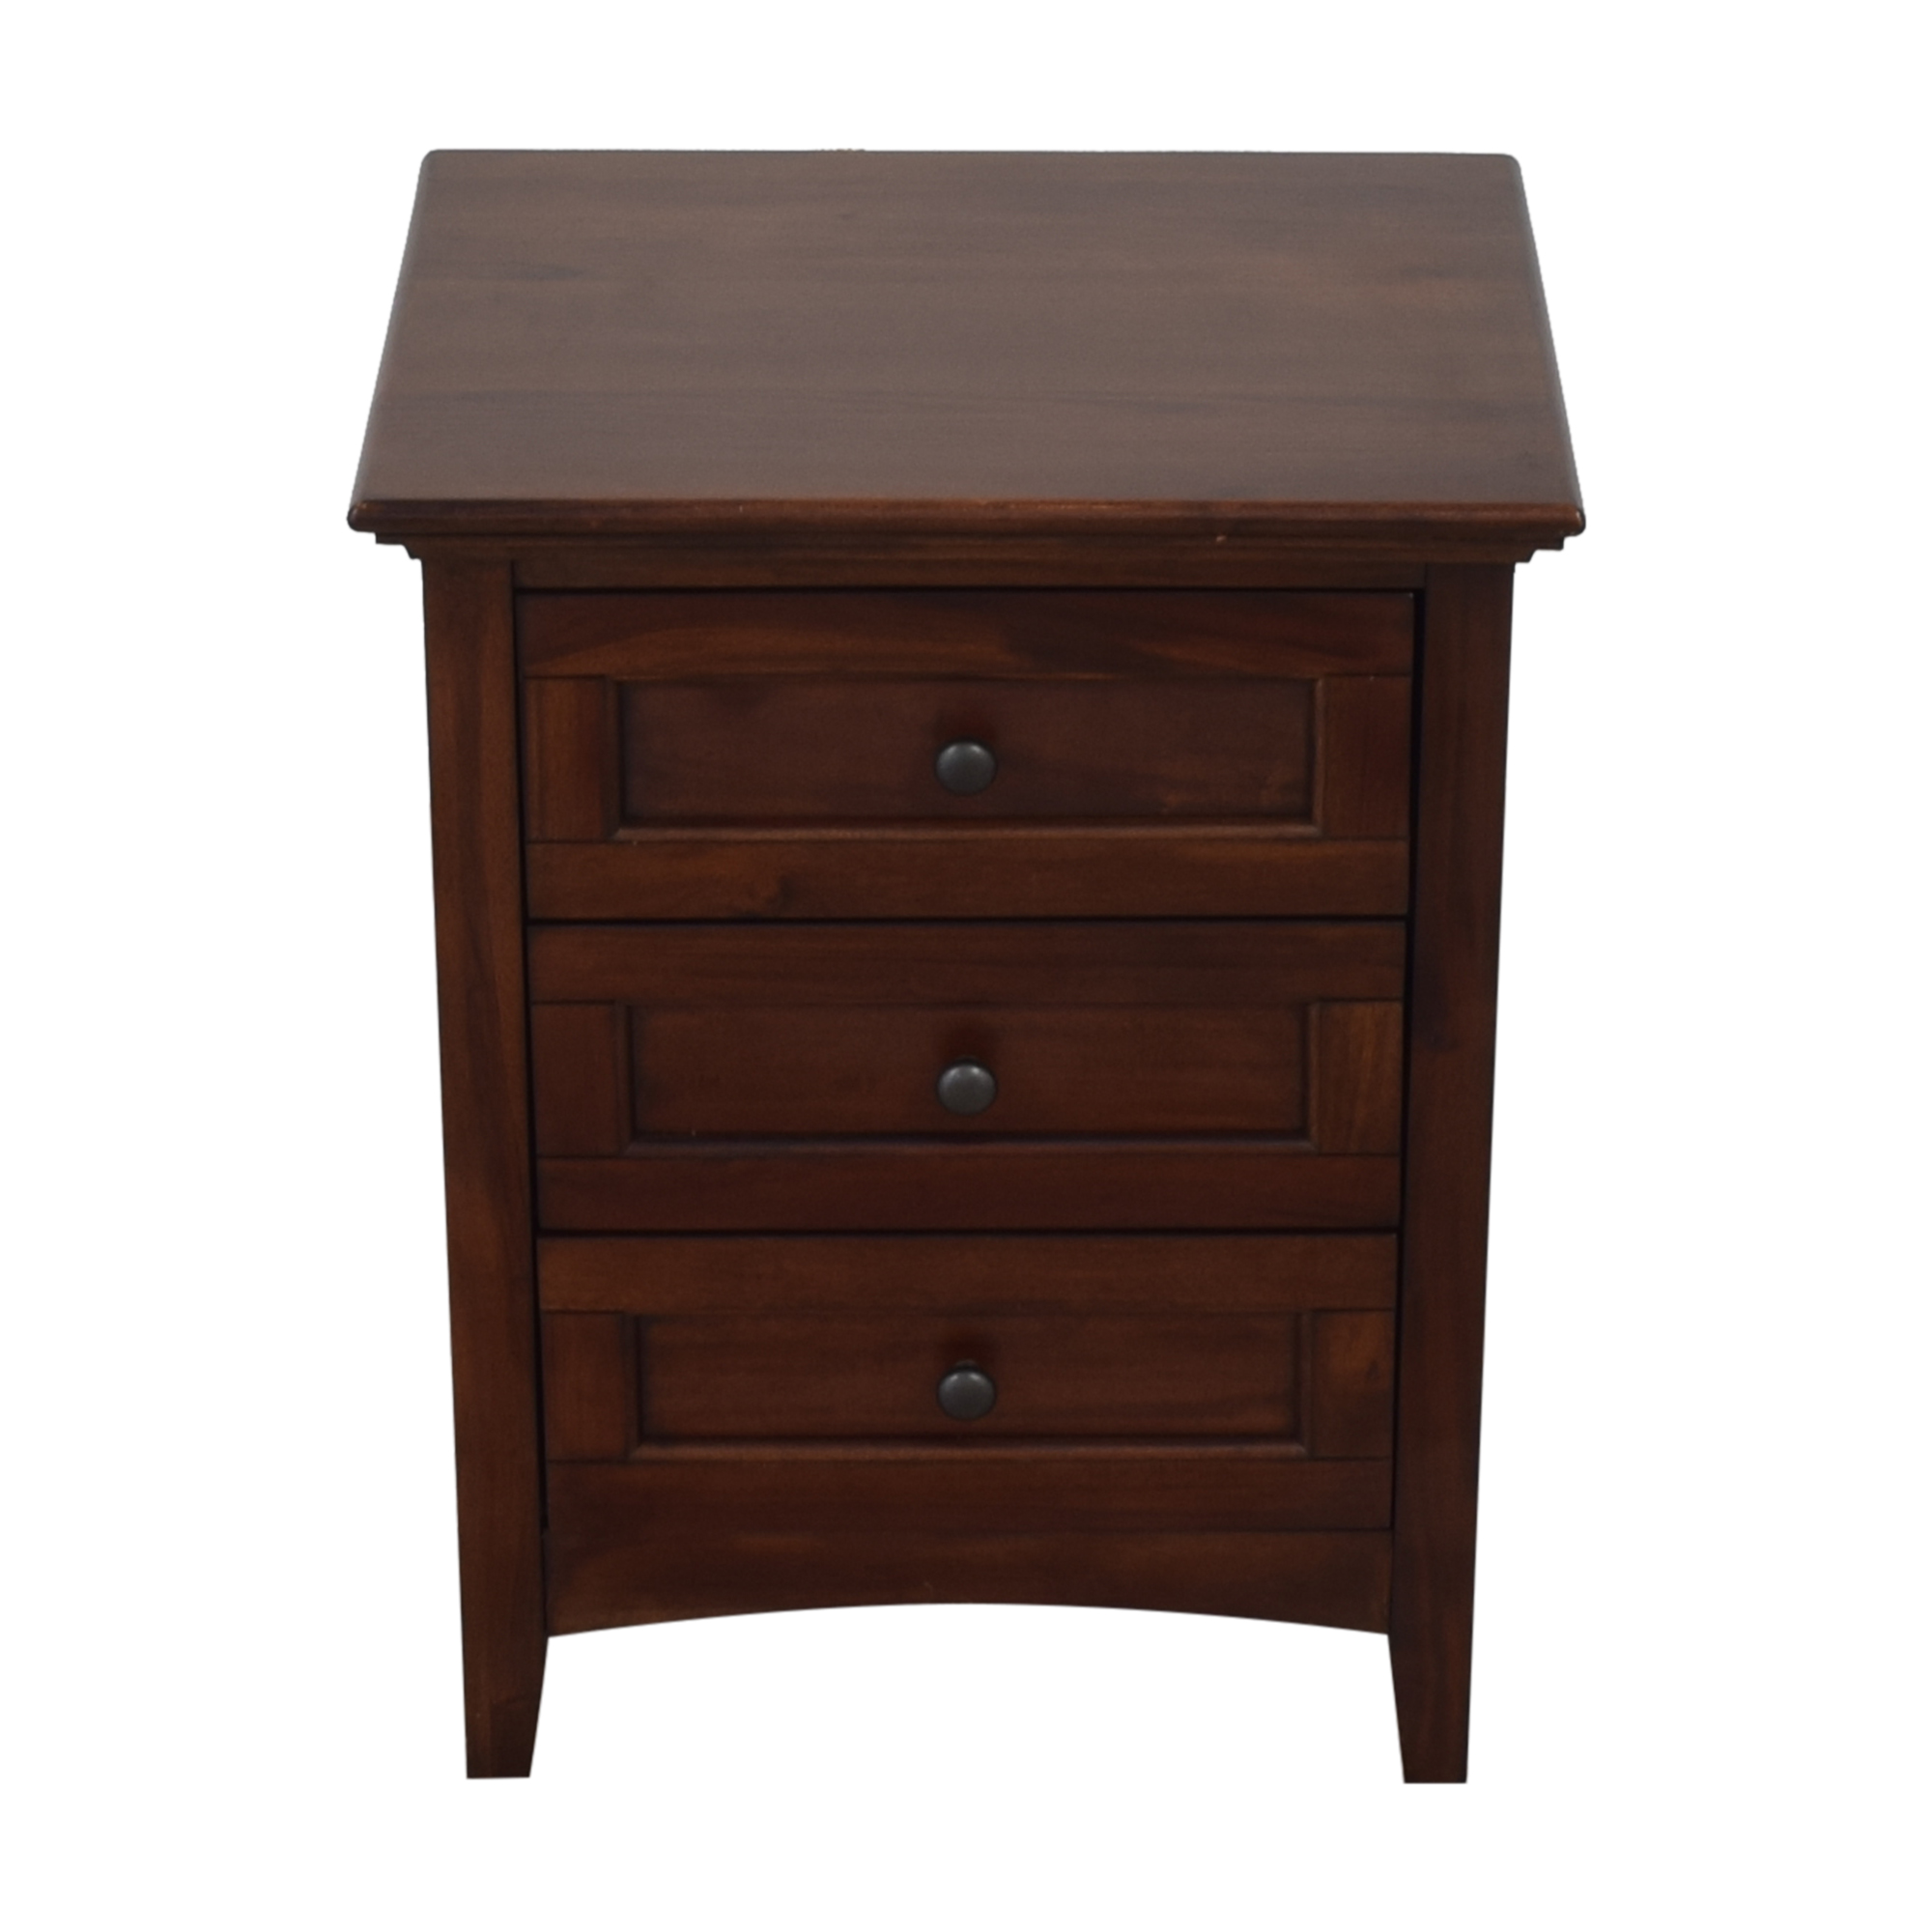 A-America Wood Furniture A-America Three Drawer Nightstand ct